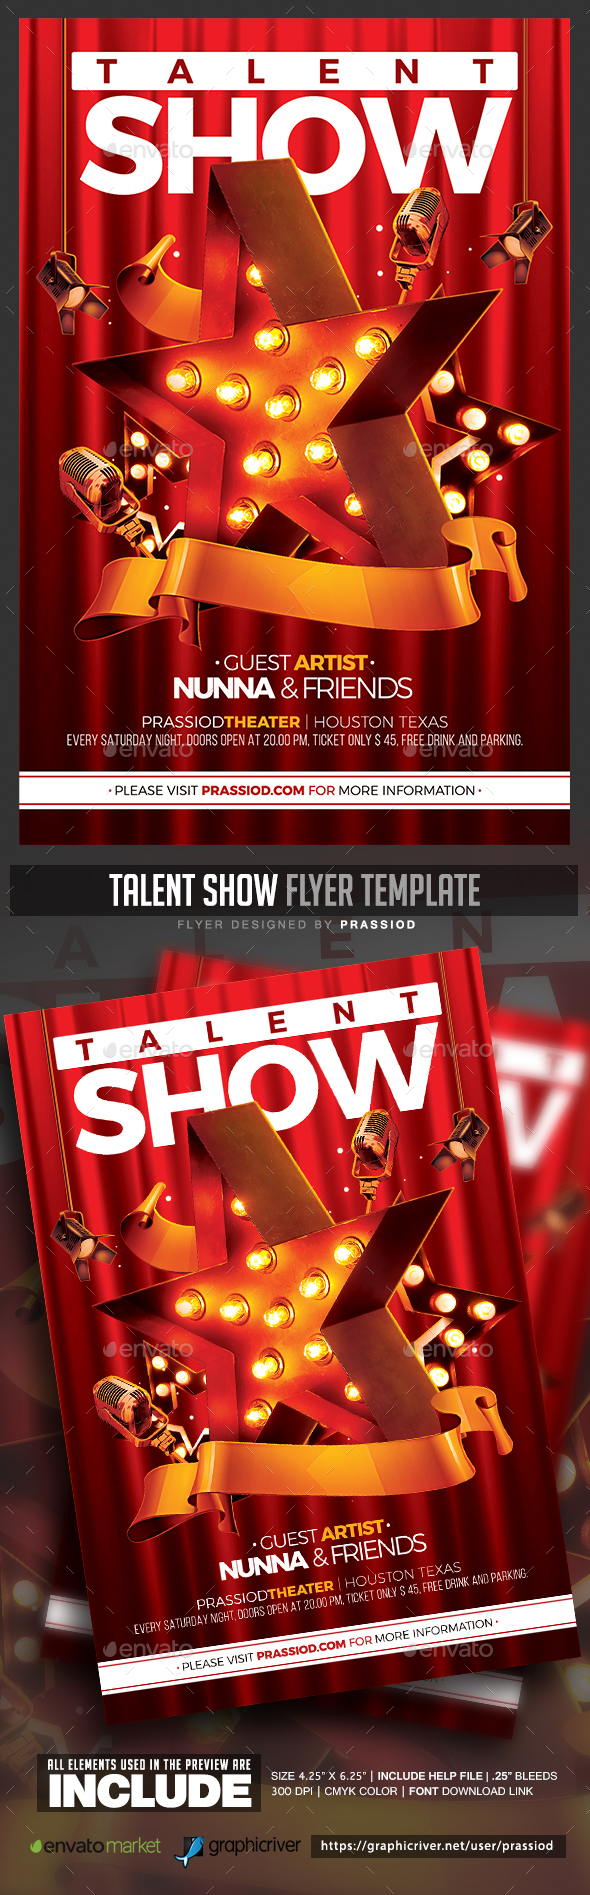 Talent Show Flyer Template by prassiod | GraphicRiver